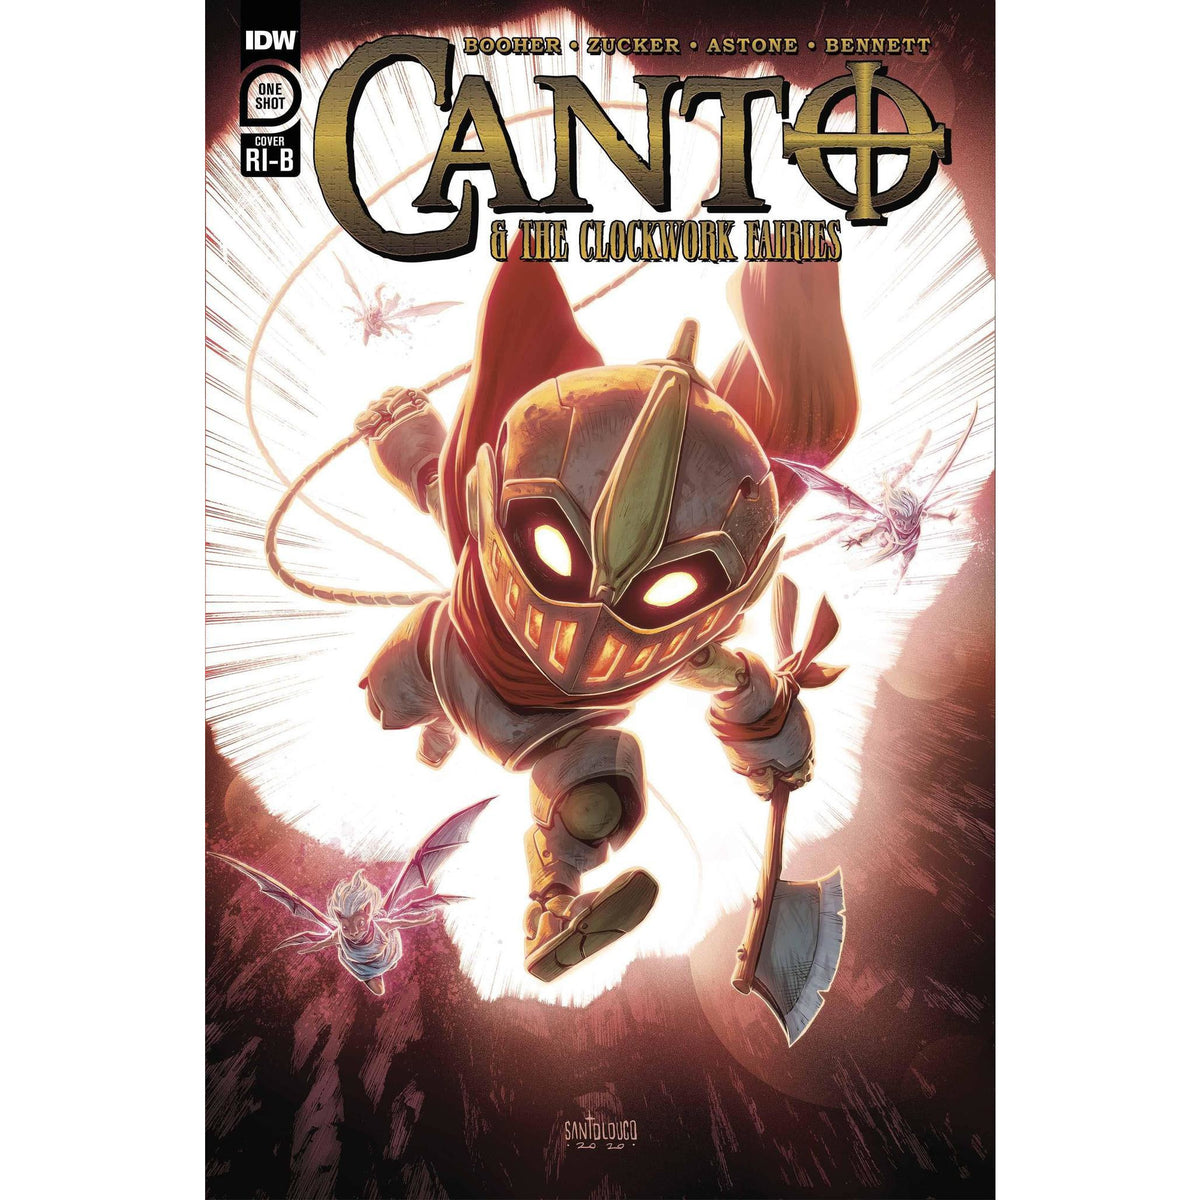 CANTO & CLOCKWORK FAIRIES ONE SHOT - 1:25 SANTOLOUCO VARIANT COVER